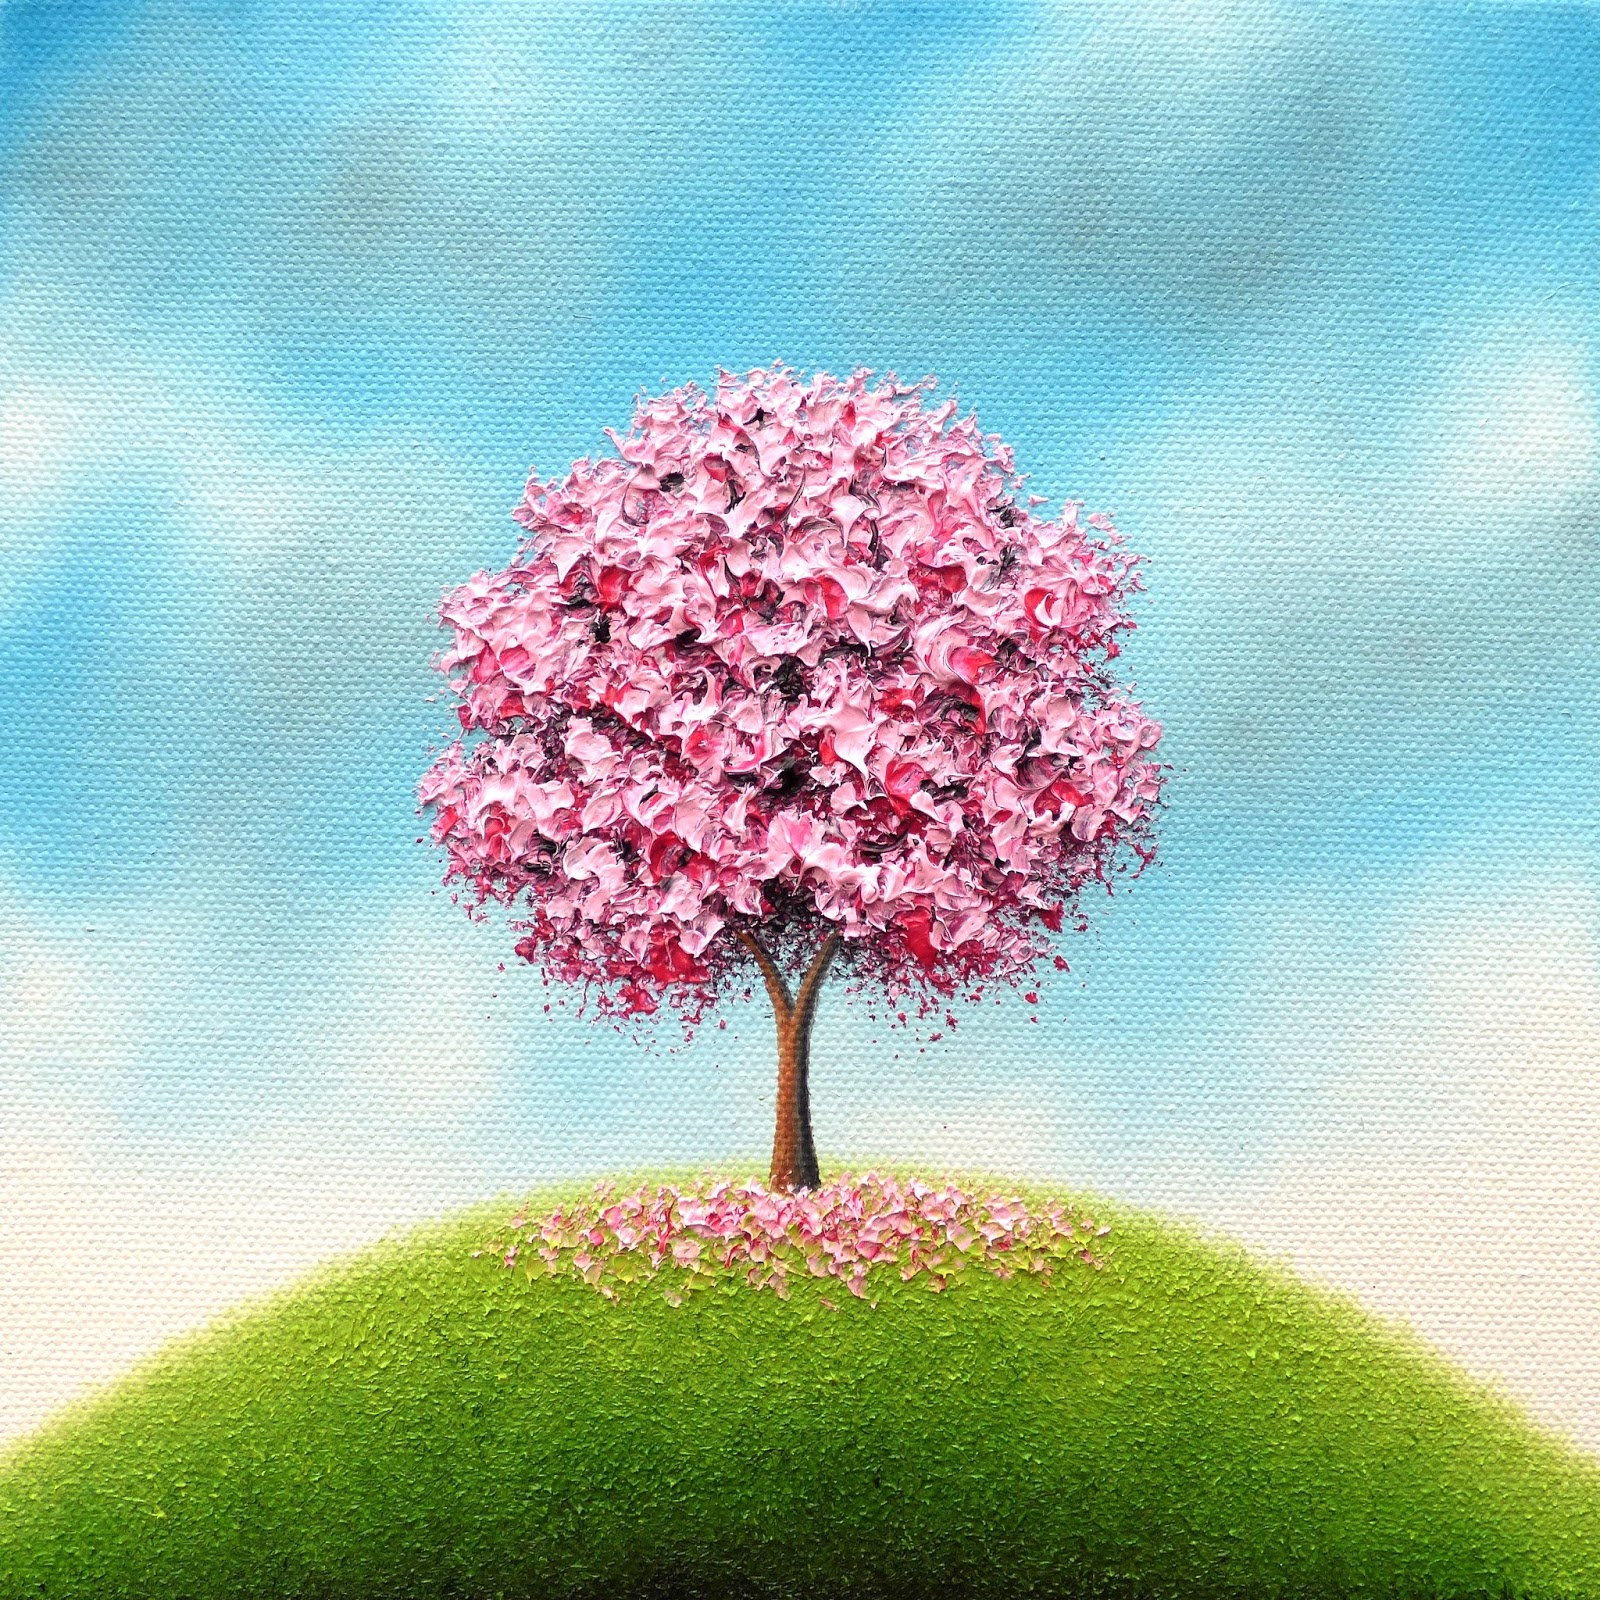 Pink Cherry Blossom Tree Painting Flowering Tree Oil Painting